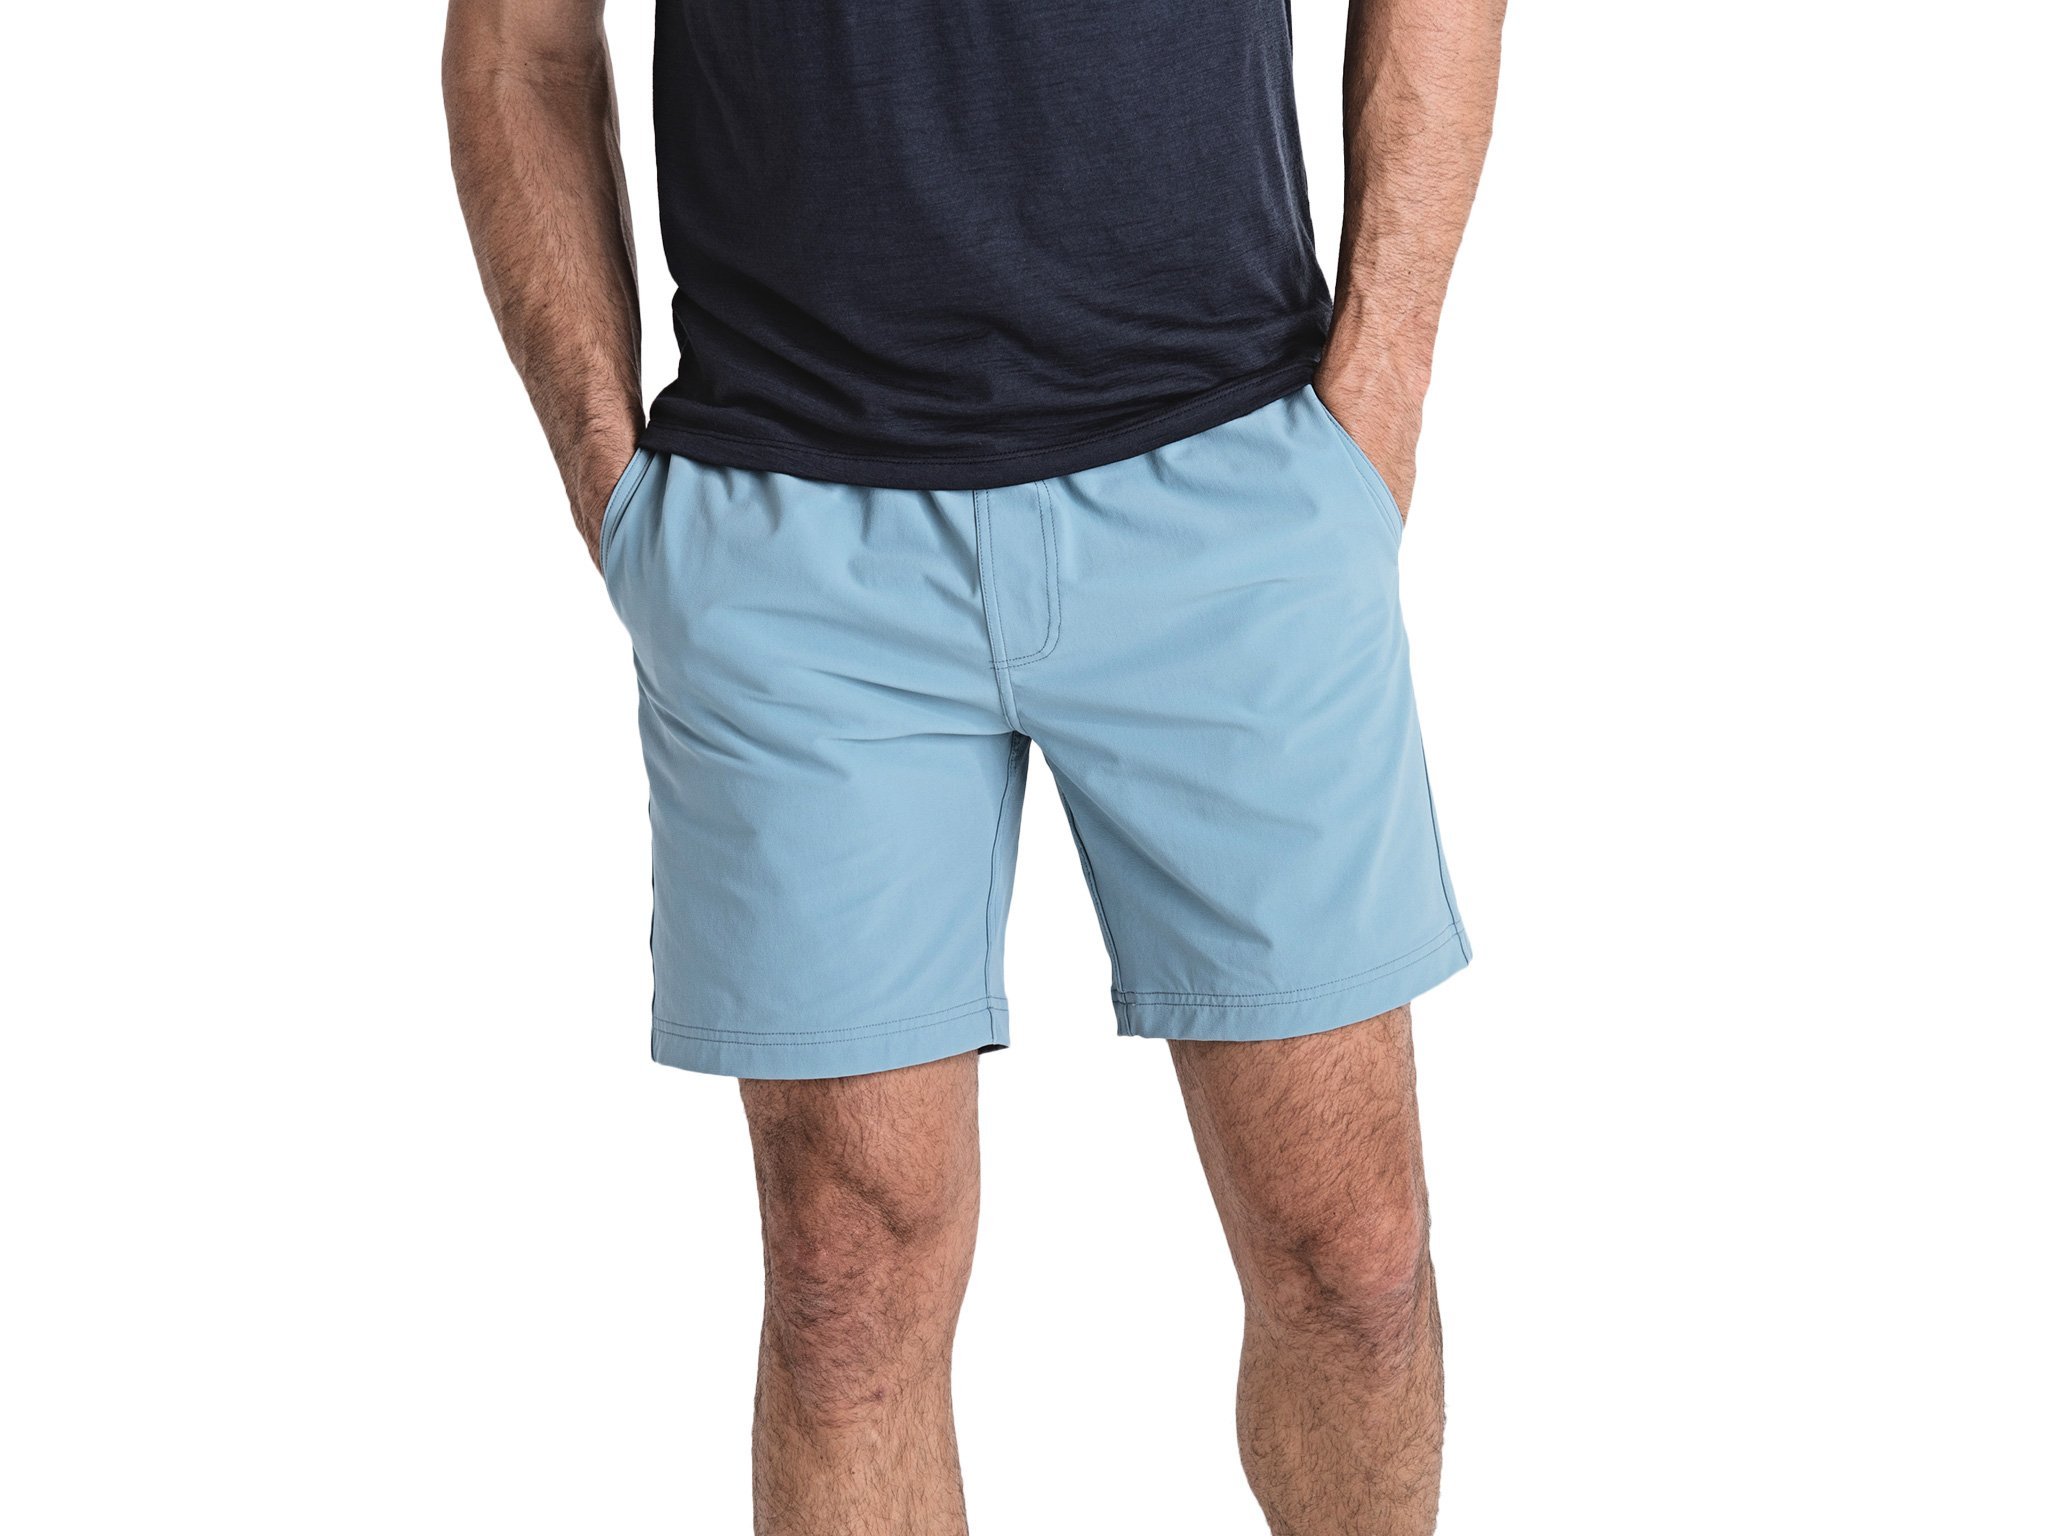 OLIVERS Apparel, Mens Water Repellent, 4-Way Stretch, All Over Short. Perfect for Running, Yoga, and Weightlifting - (Denim Blue, Small)